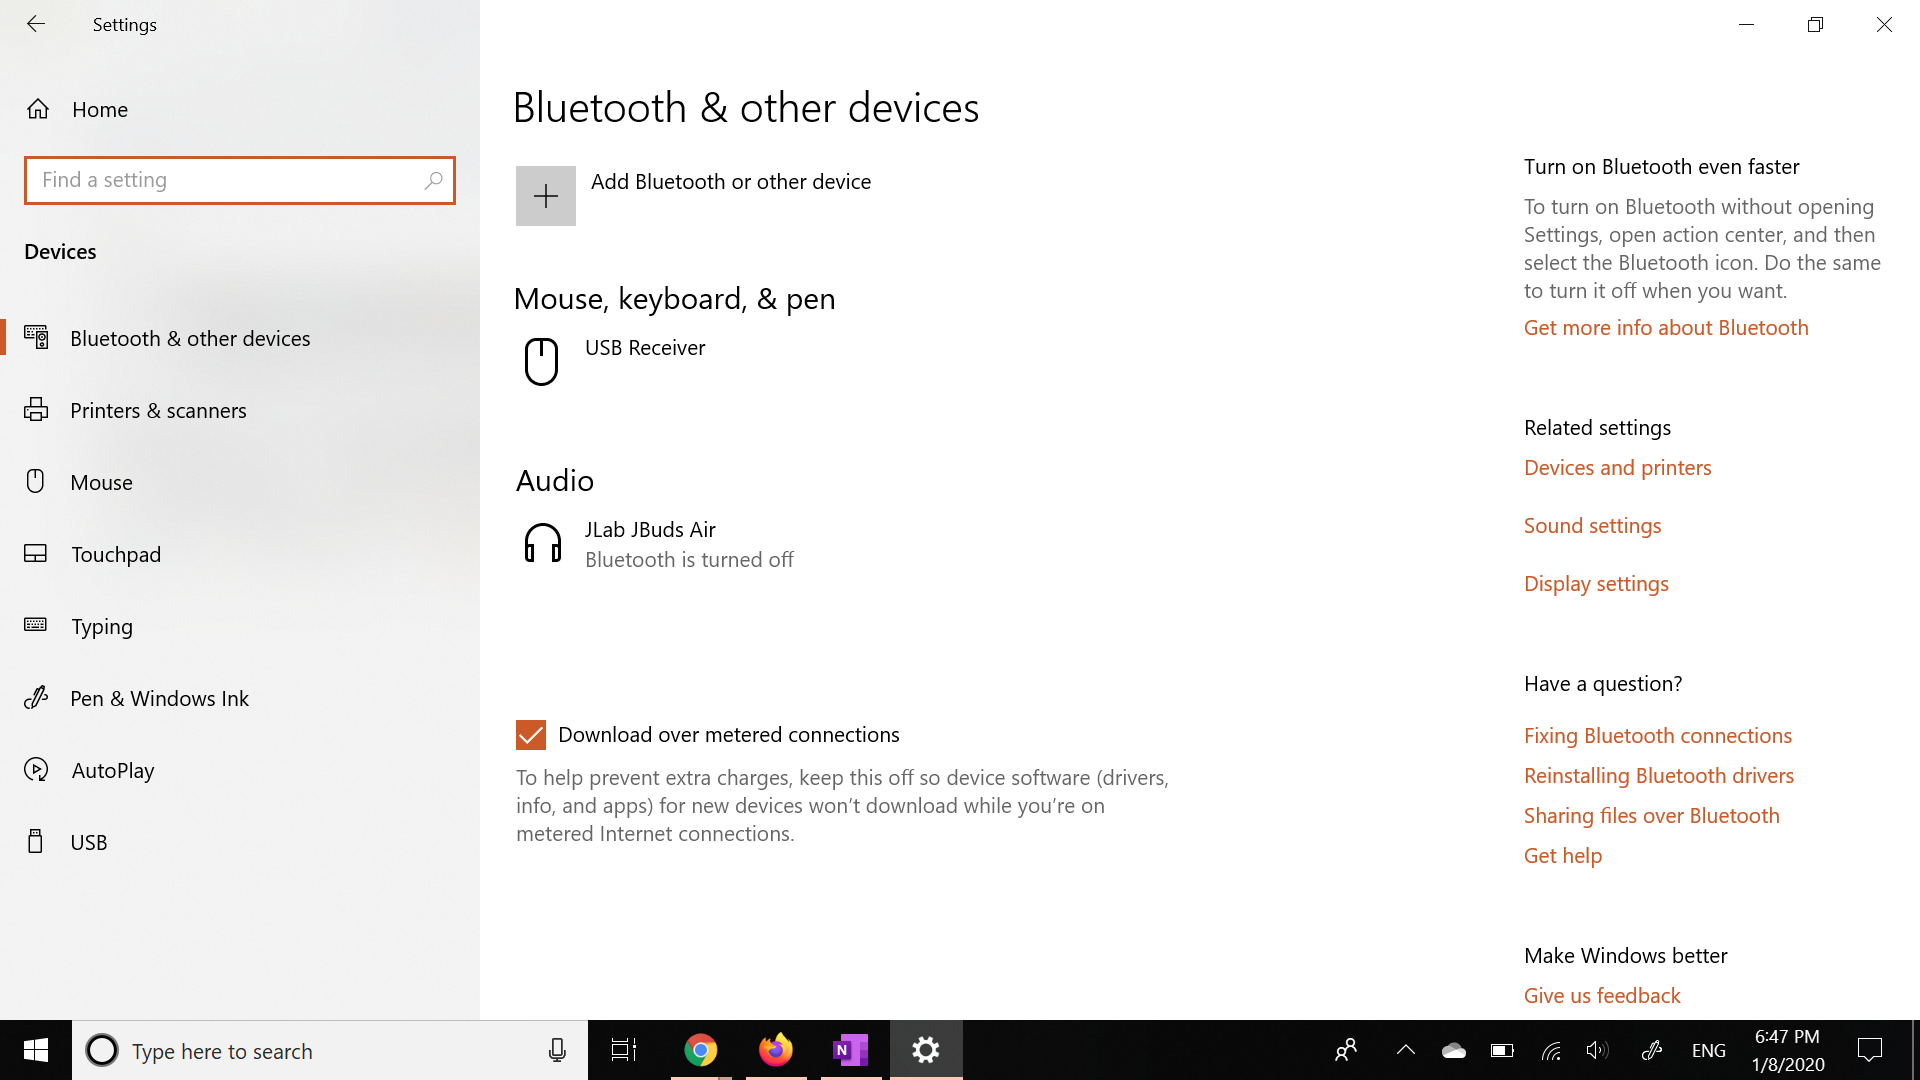 Bluetooth keeps disappearing and reappearing on windows 10 69a68ca1-e93e-4b63-a523-cf5c1b7530e5?upload=true.png